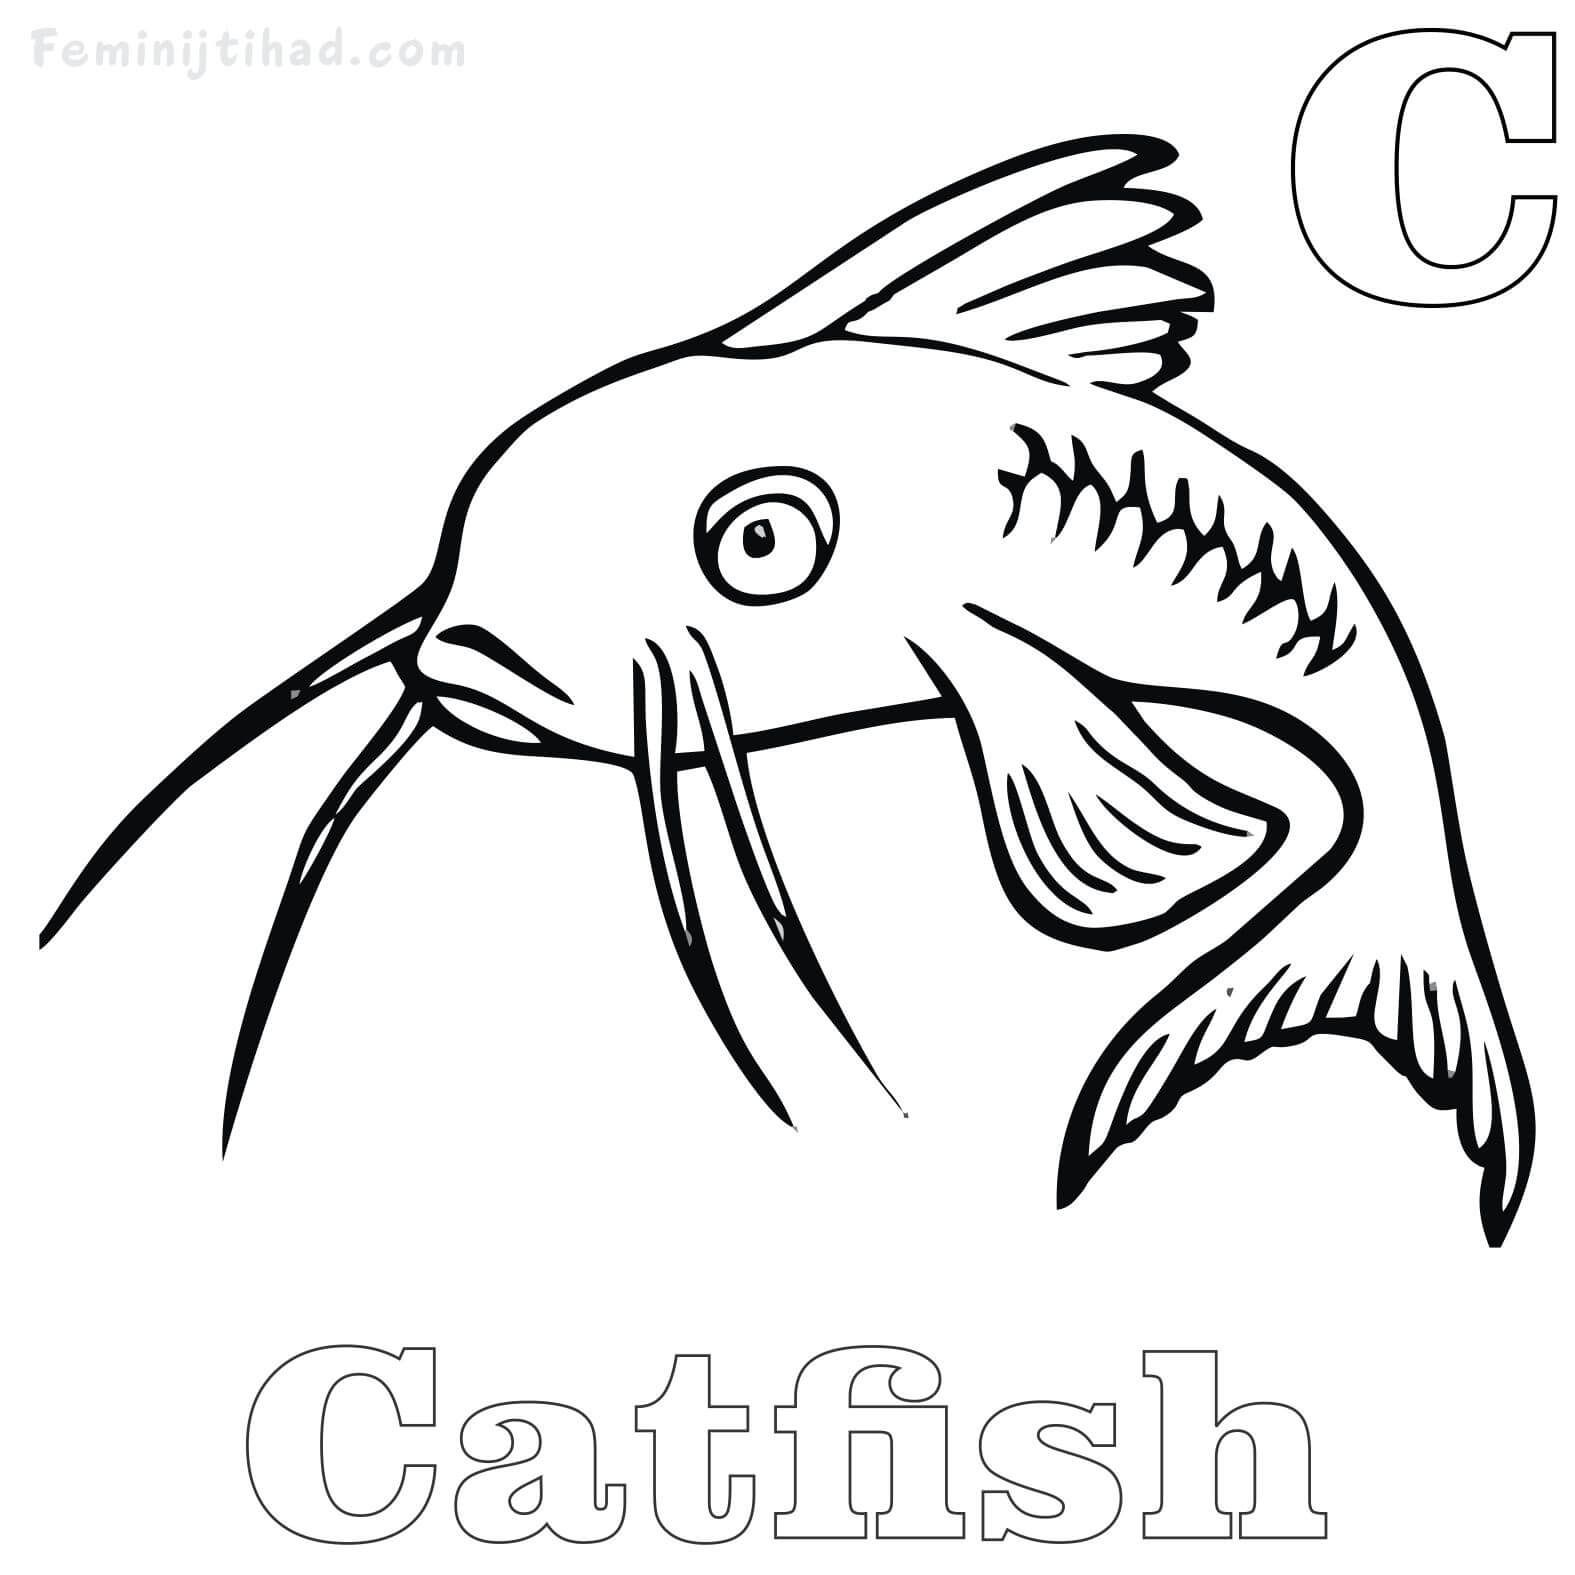 Catfish Coloring Pages Printable For Free Free Coloring Sheets Animal Coloring Pages Coloring Pages Catfish